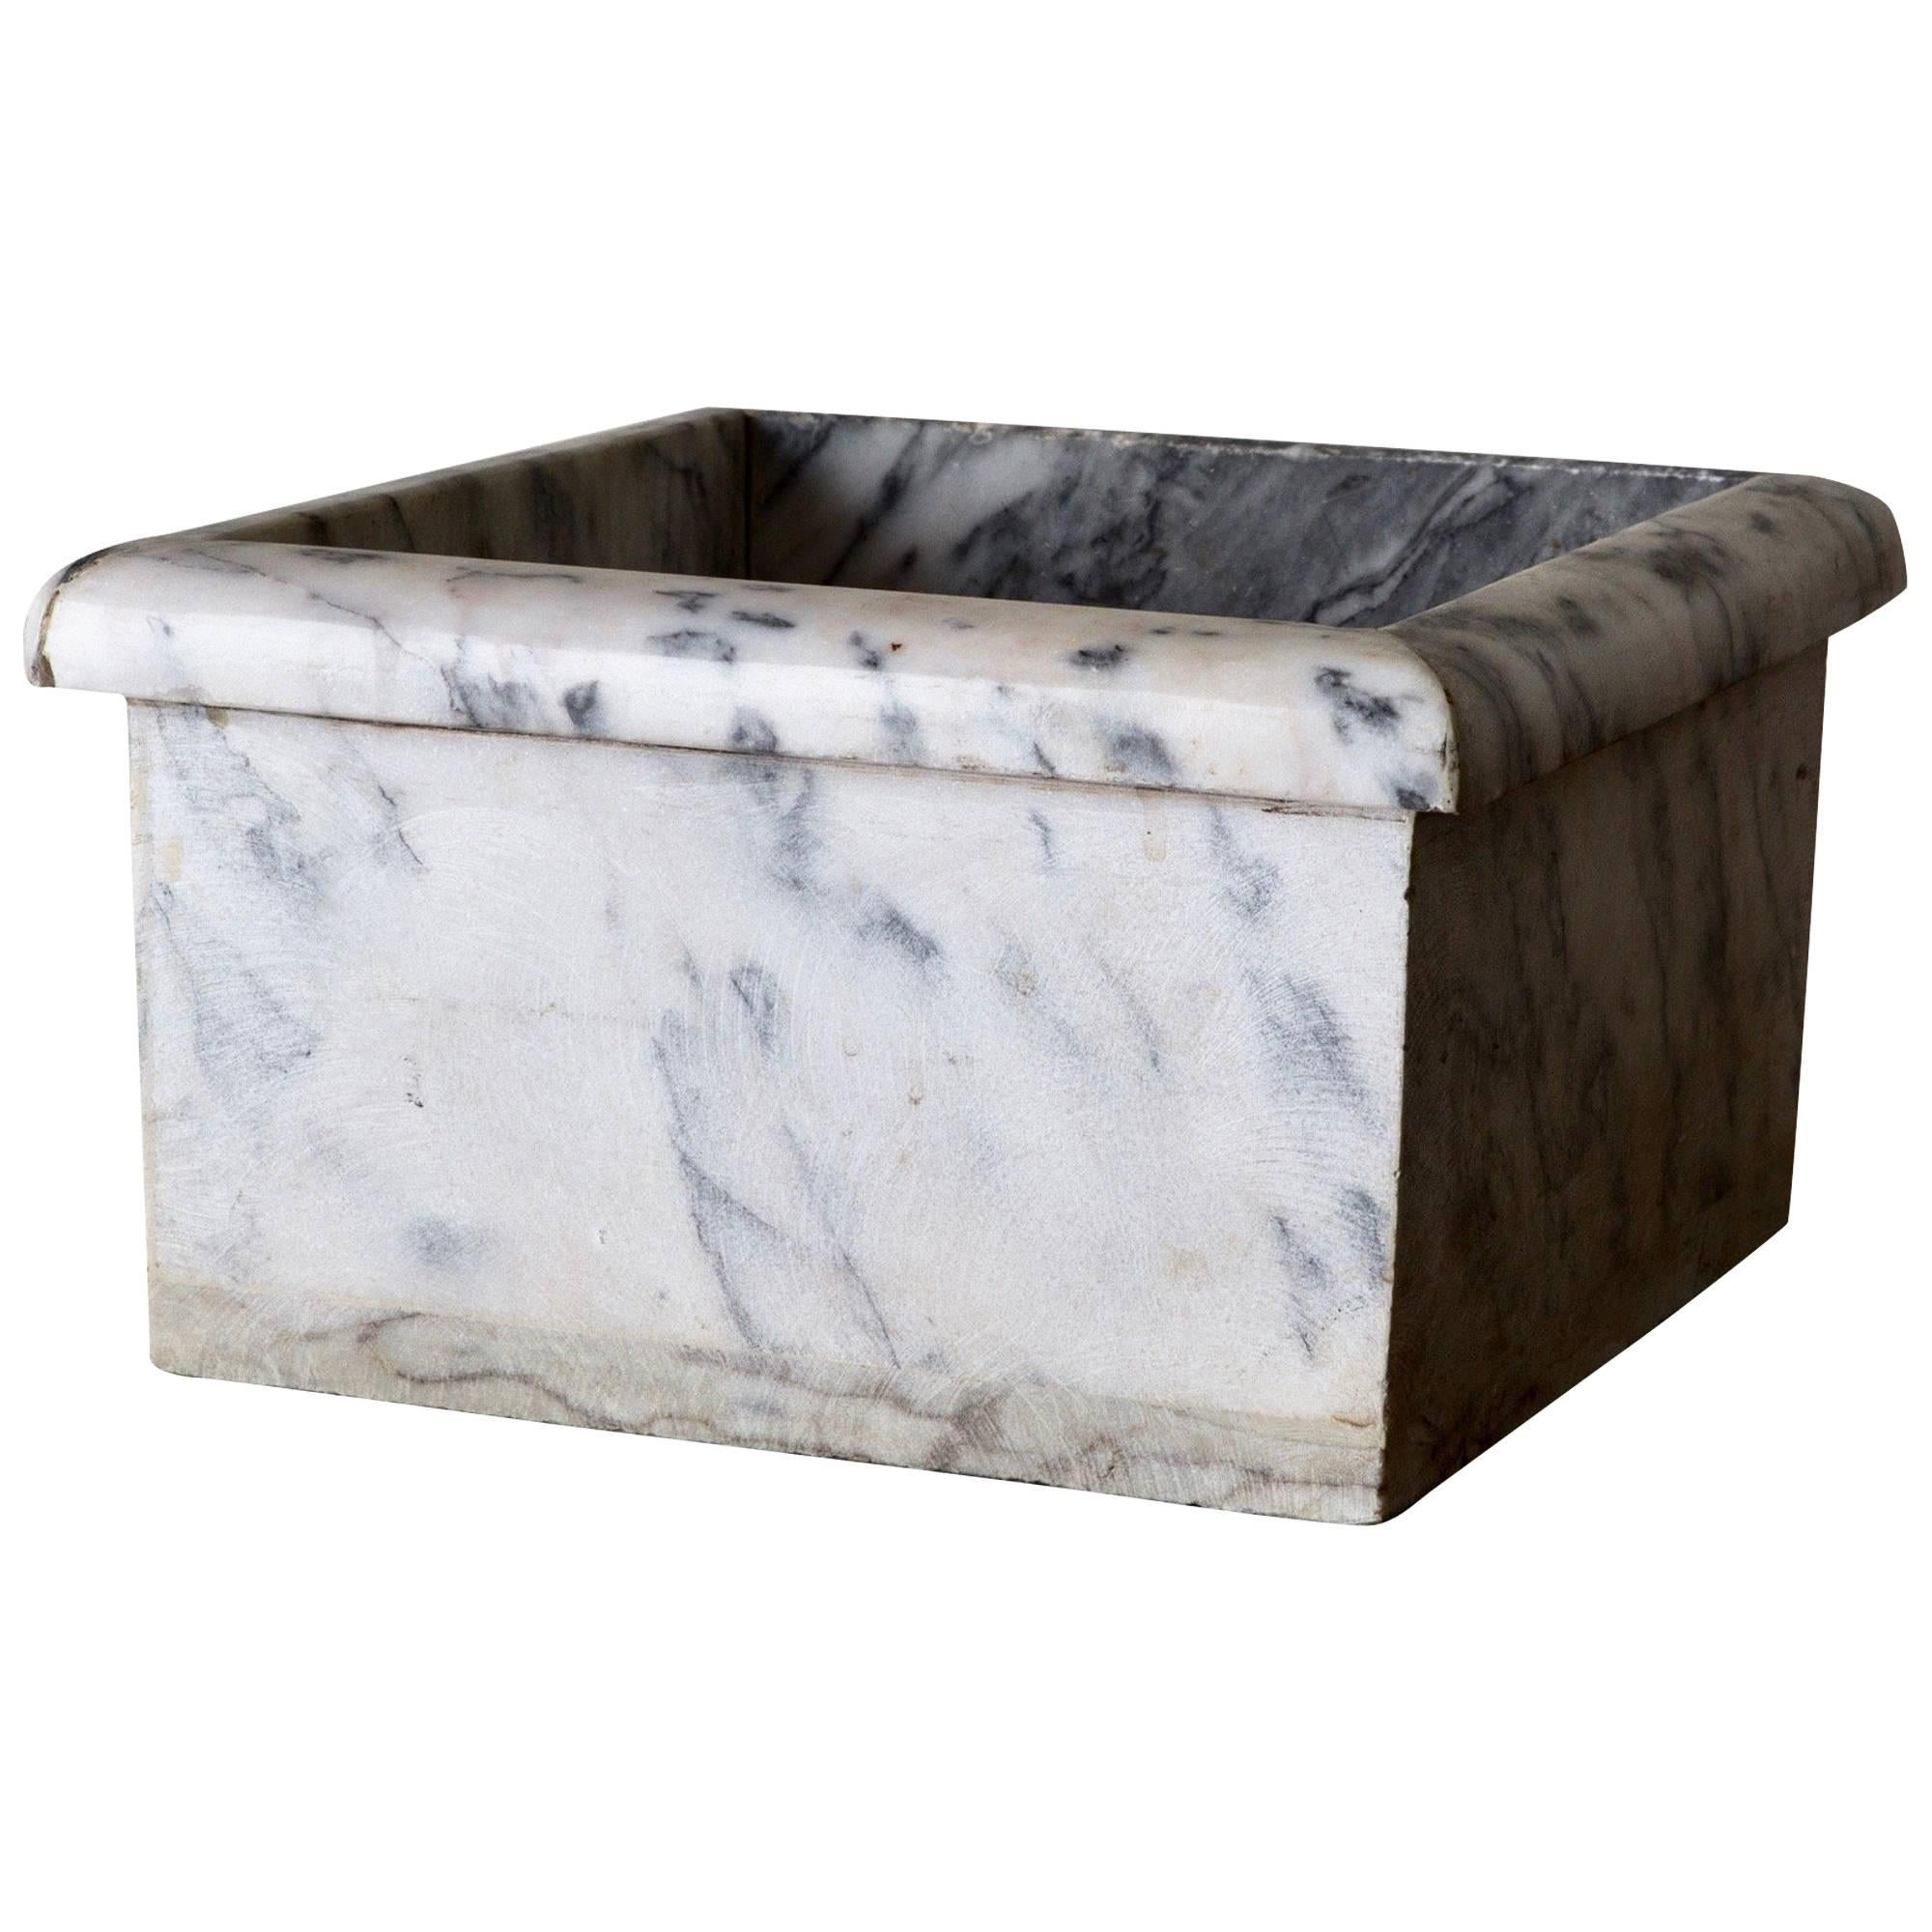 Container French Marble Gray and White, 20th Century, France